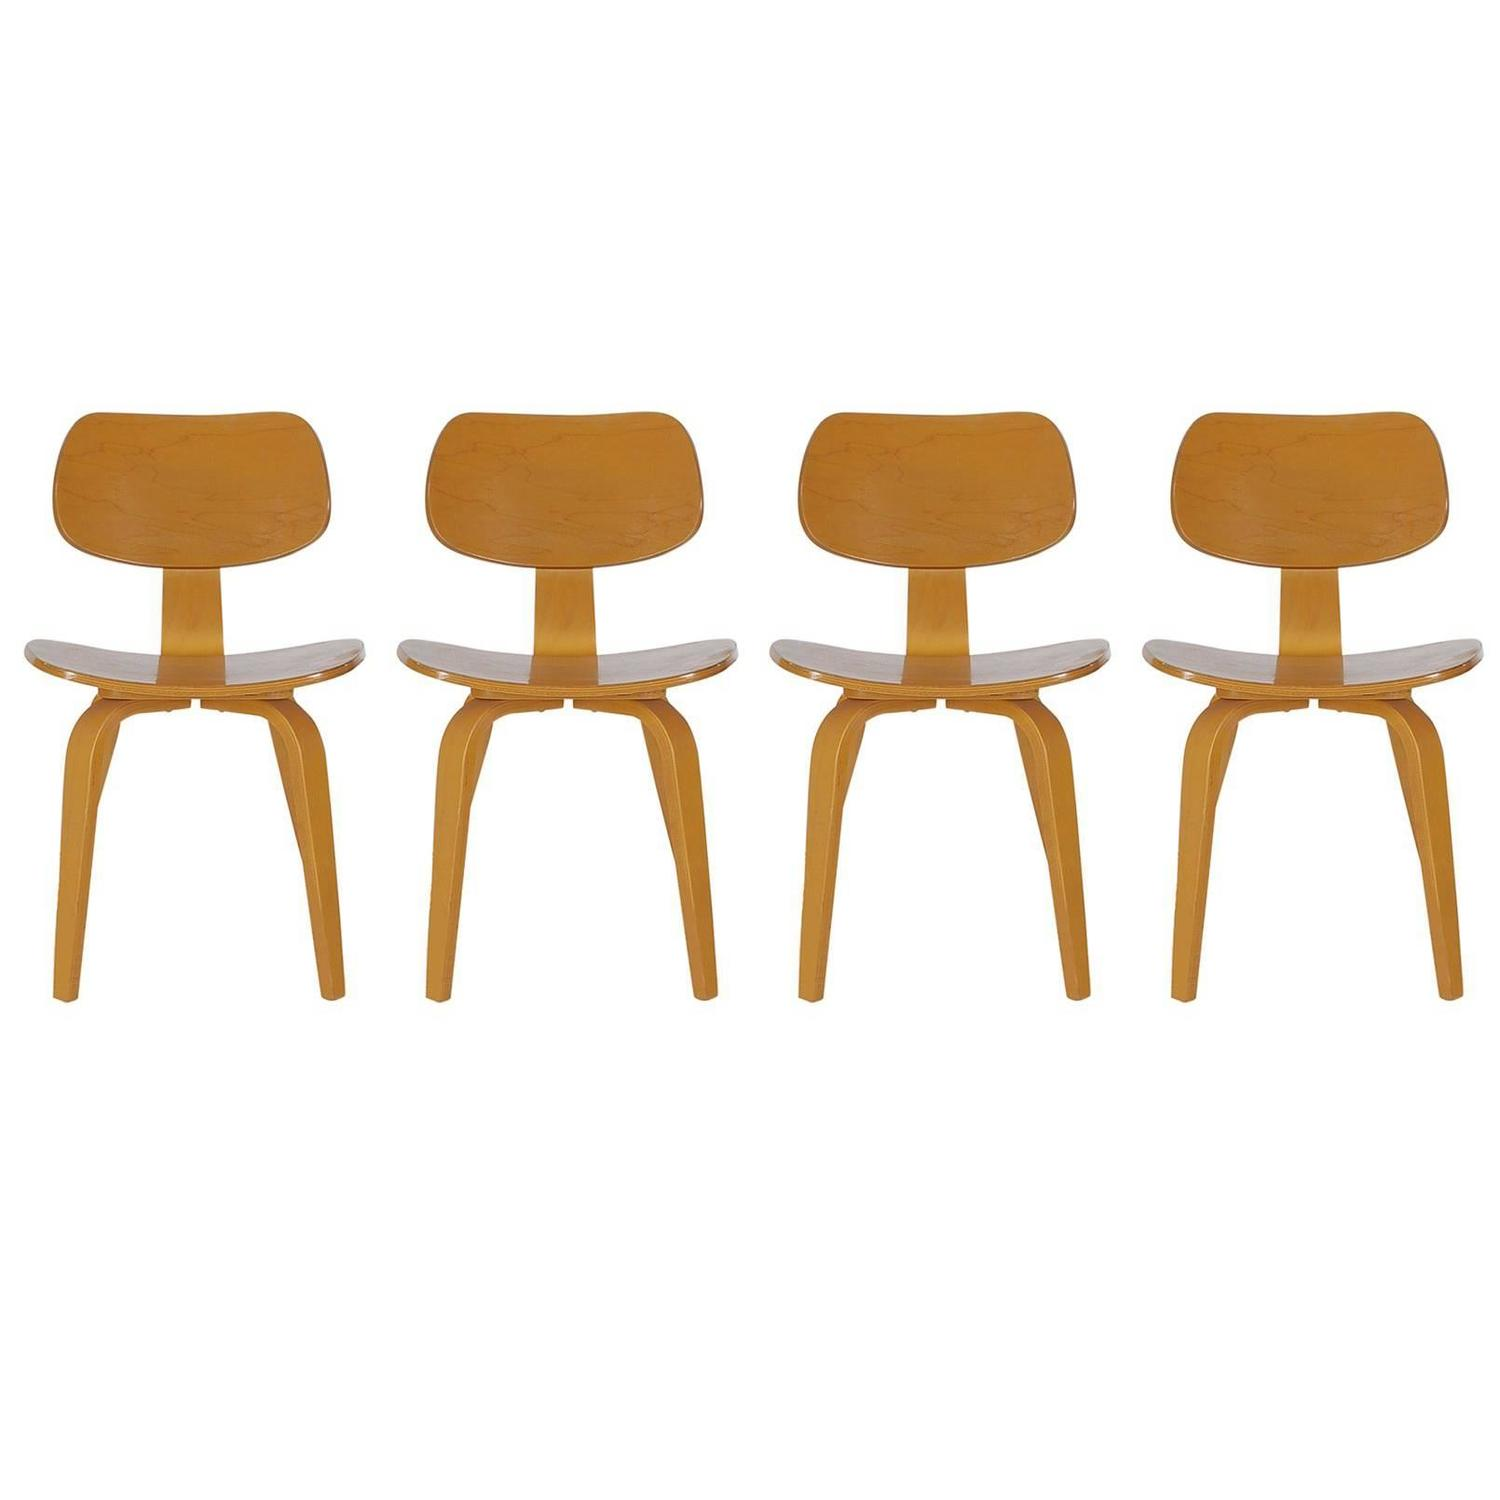 Bentwood chair modern - Mid Century Modern Bentwood Dining Chairs By Thonet After Charles Eames Dcw